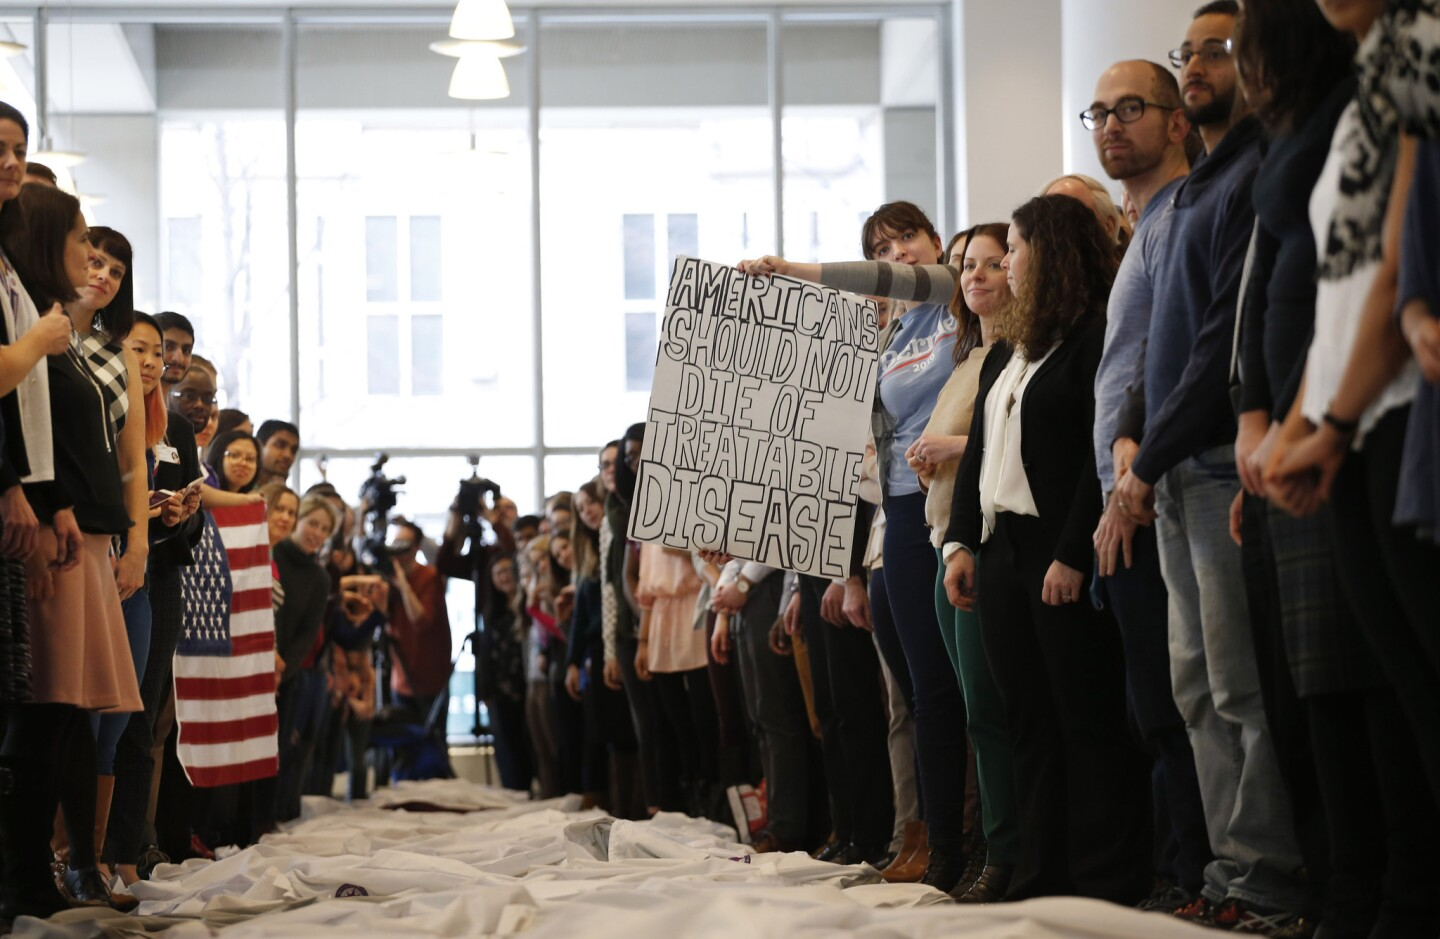 At the Northwestern University Lurie Research Center's Ryan Family Atrium, Northwestern medical students and faculty take part in a demonstration Jan. 30, 2017, in which they laid down their white coats to raise awareness about people who may lose their health insurance with changes to the Affordable Care Act.